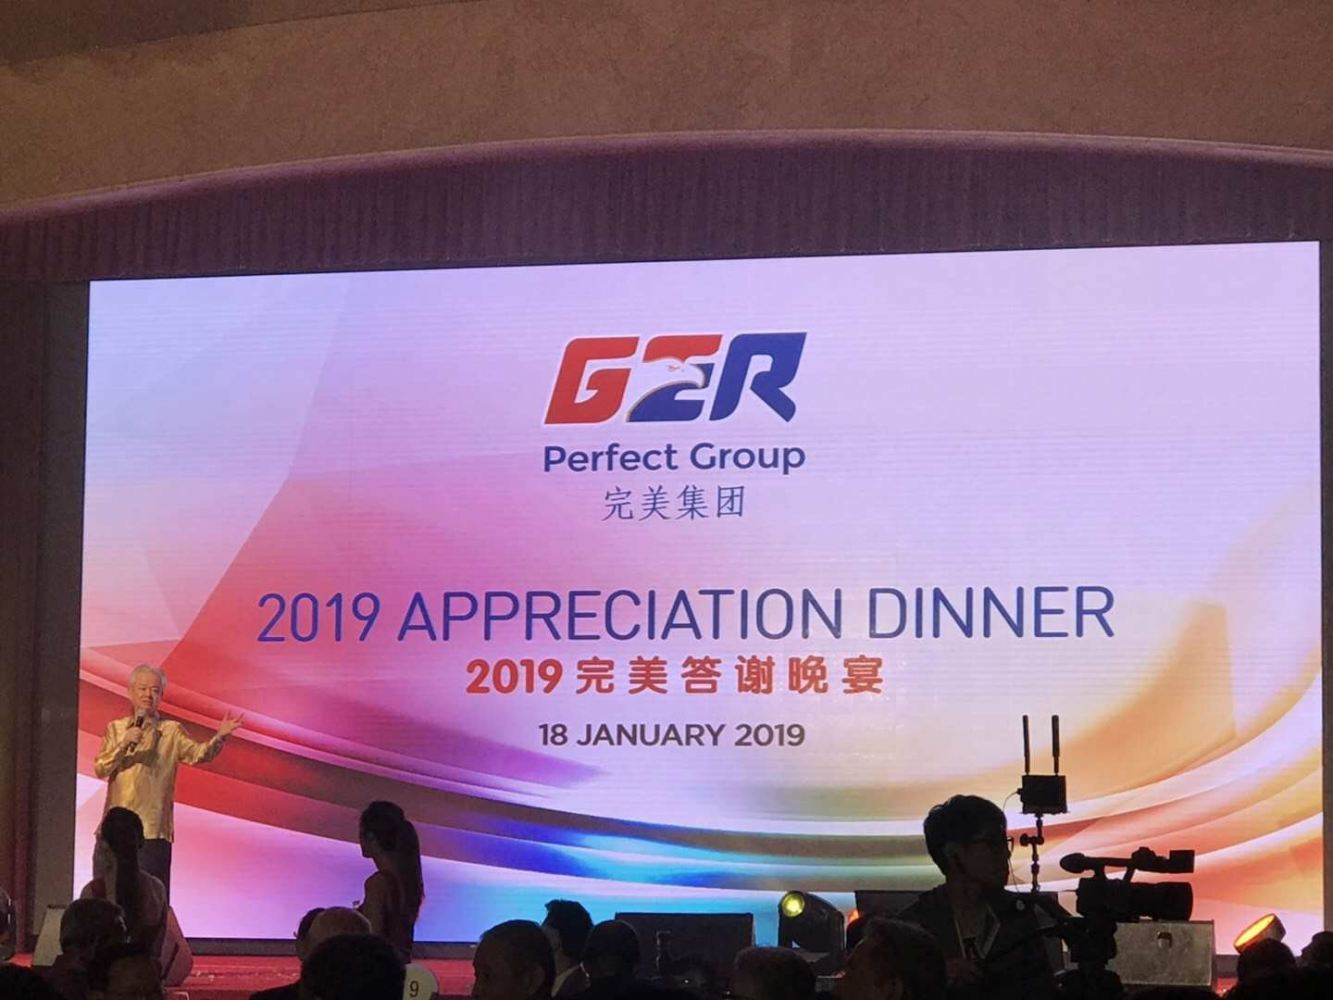 PUCM受邀出席2019完美集团答谢晚宴 PUCM attended 2019 Perfect Group Appreciation Dinner